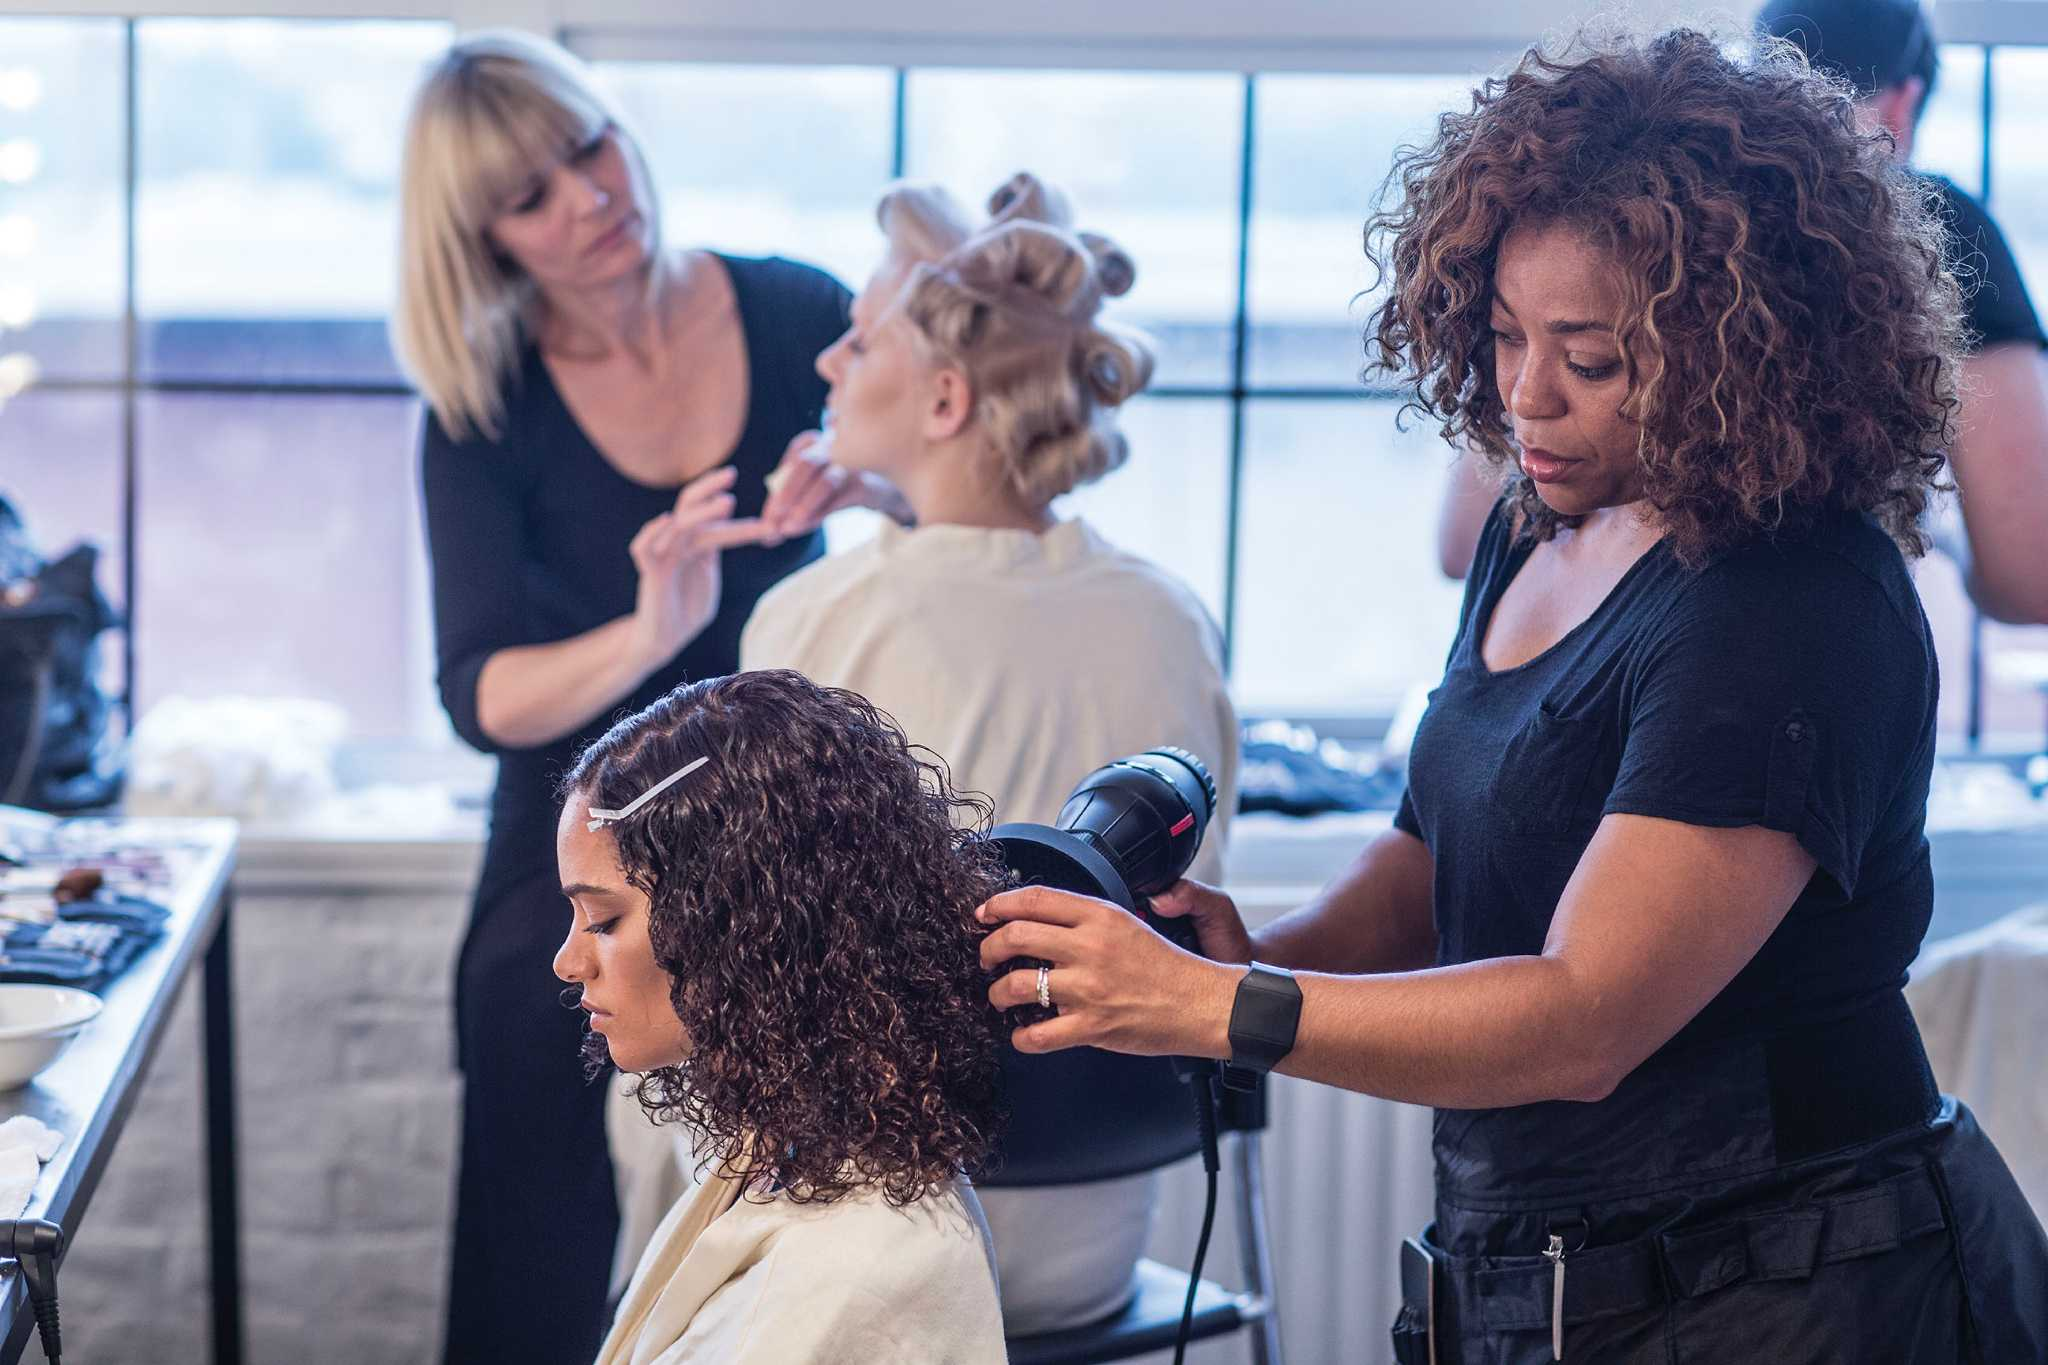 These Are The Top Rated Hair Salons In Houston According To Yelp